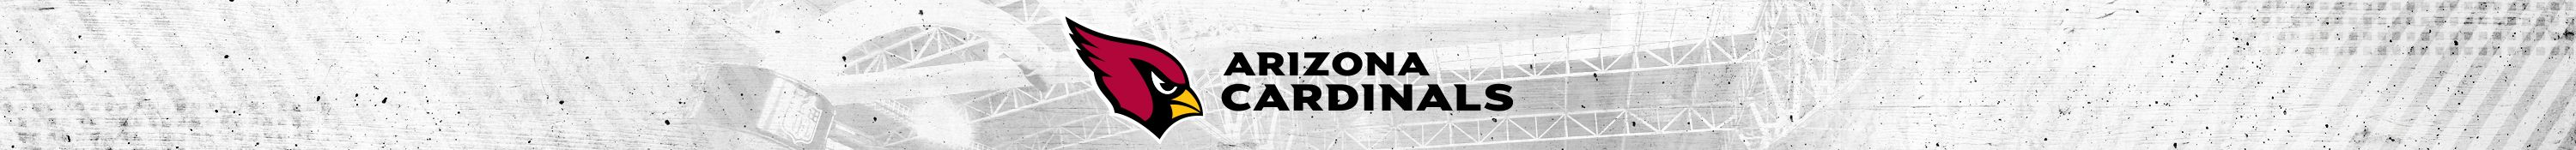 Arizona Cardinals Home The Official Source Of The Latest Cardinals Headlines News Videos Photos Tickets Rosters And Game Day Information